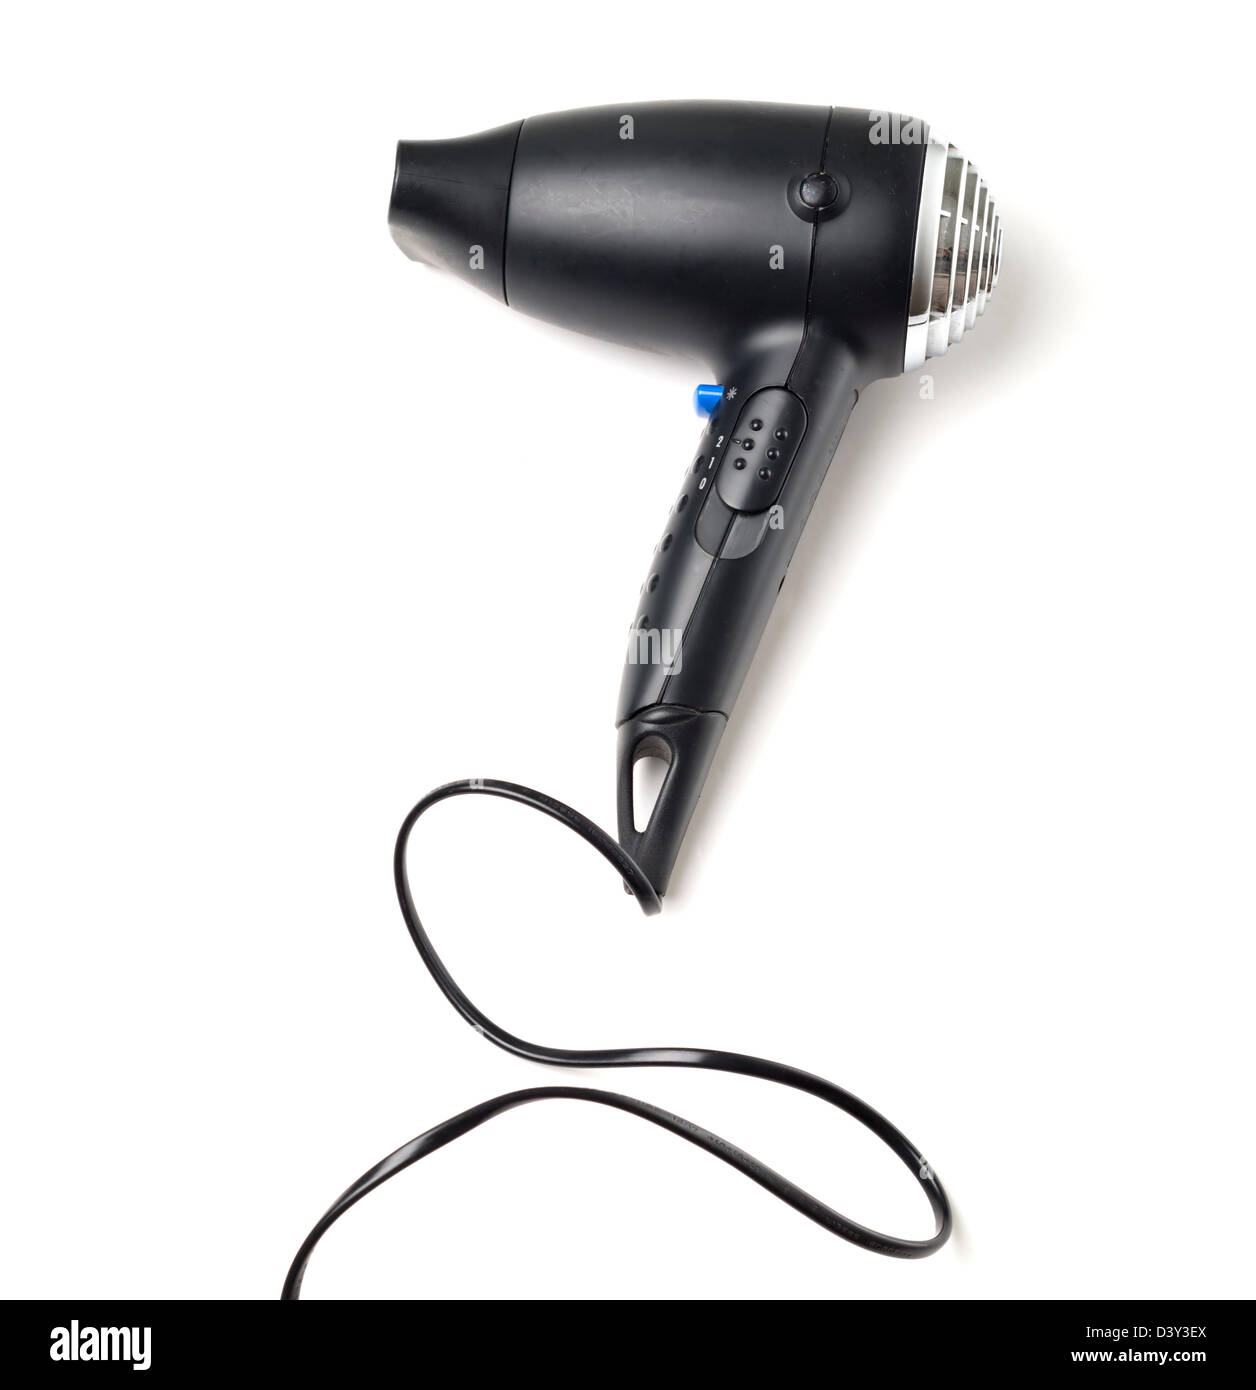 Black hair dryer isolated on white background - Stock Image